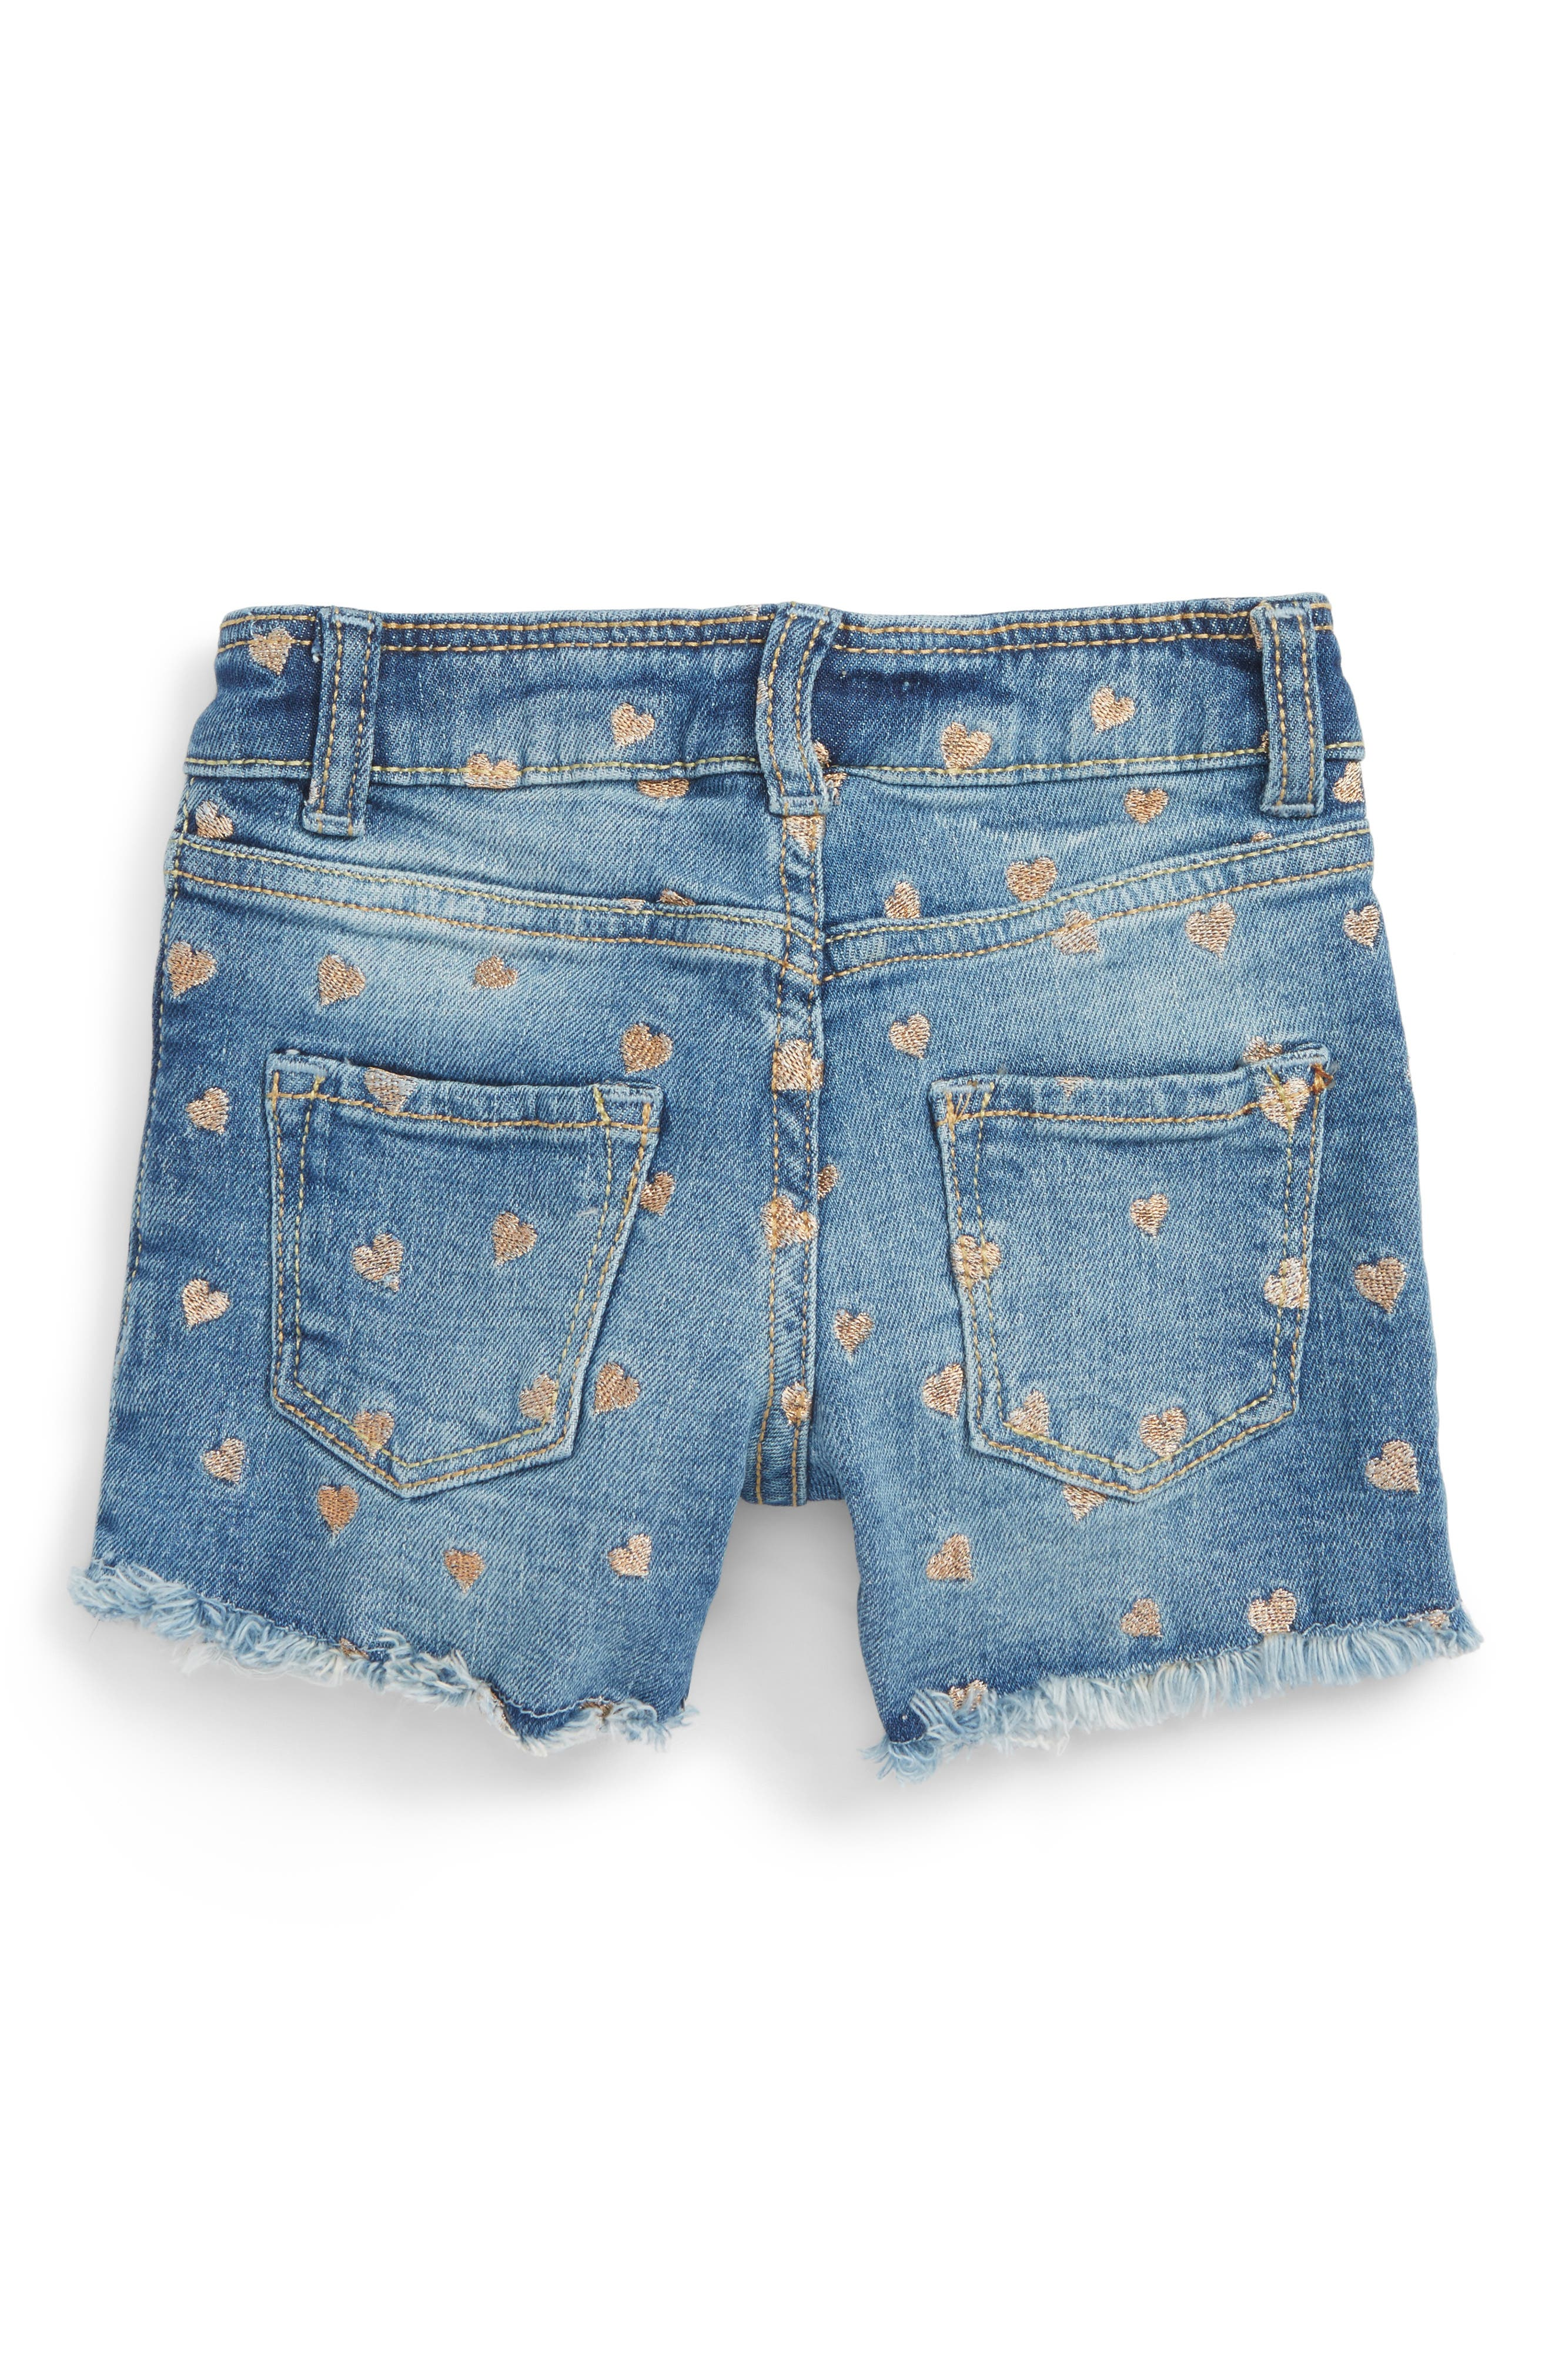 Mini Heart Cutoff Denim Shorts,                             Main thumbnail 1, color,                             416